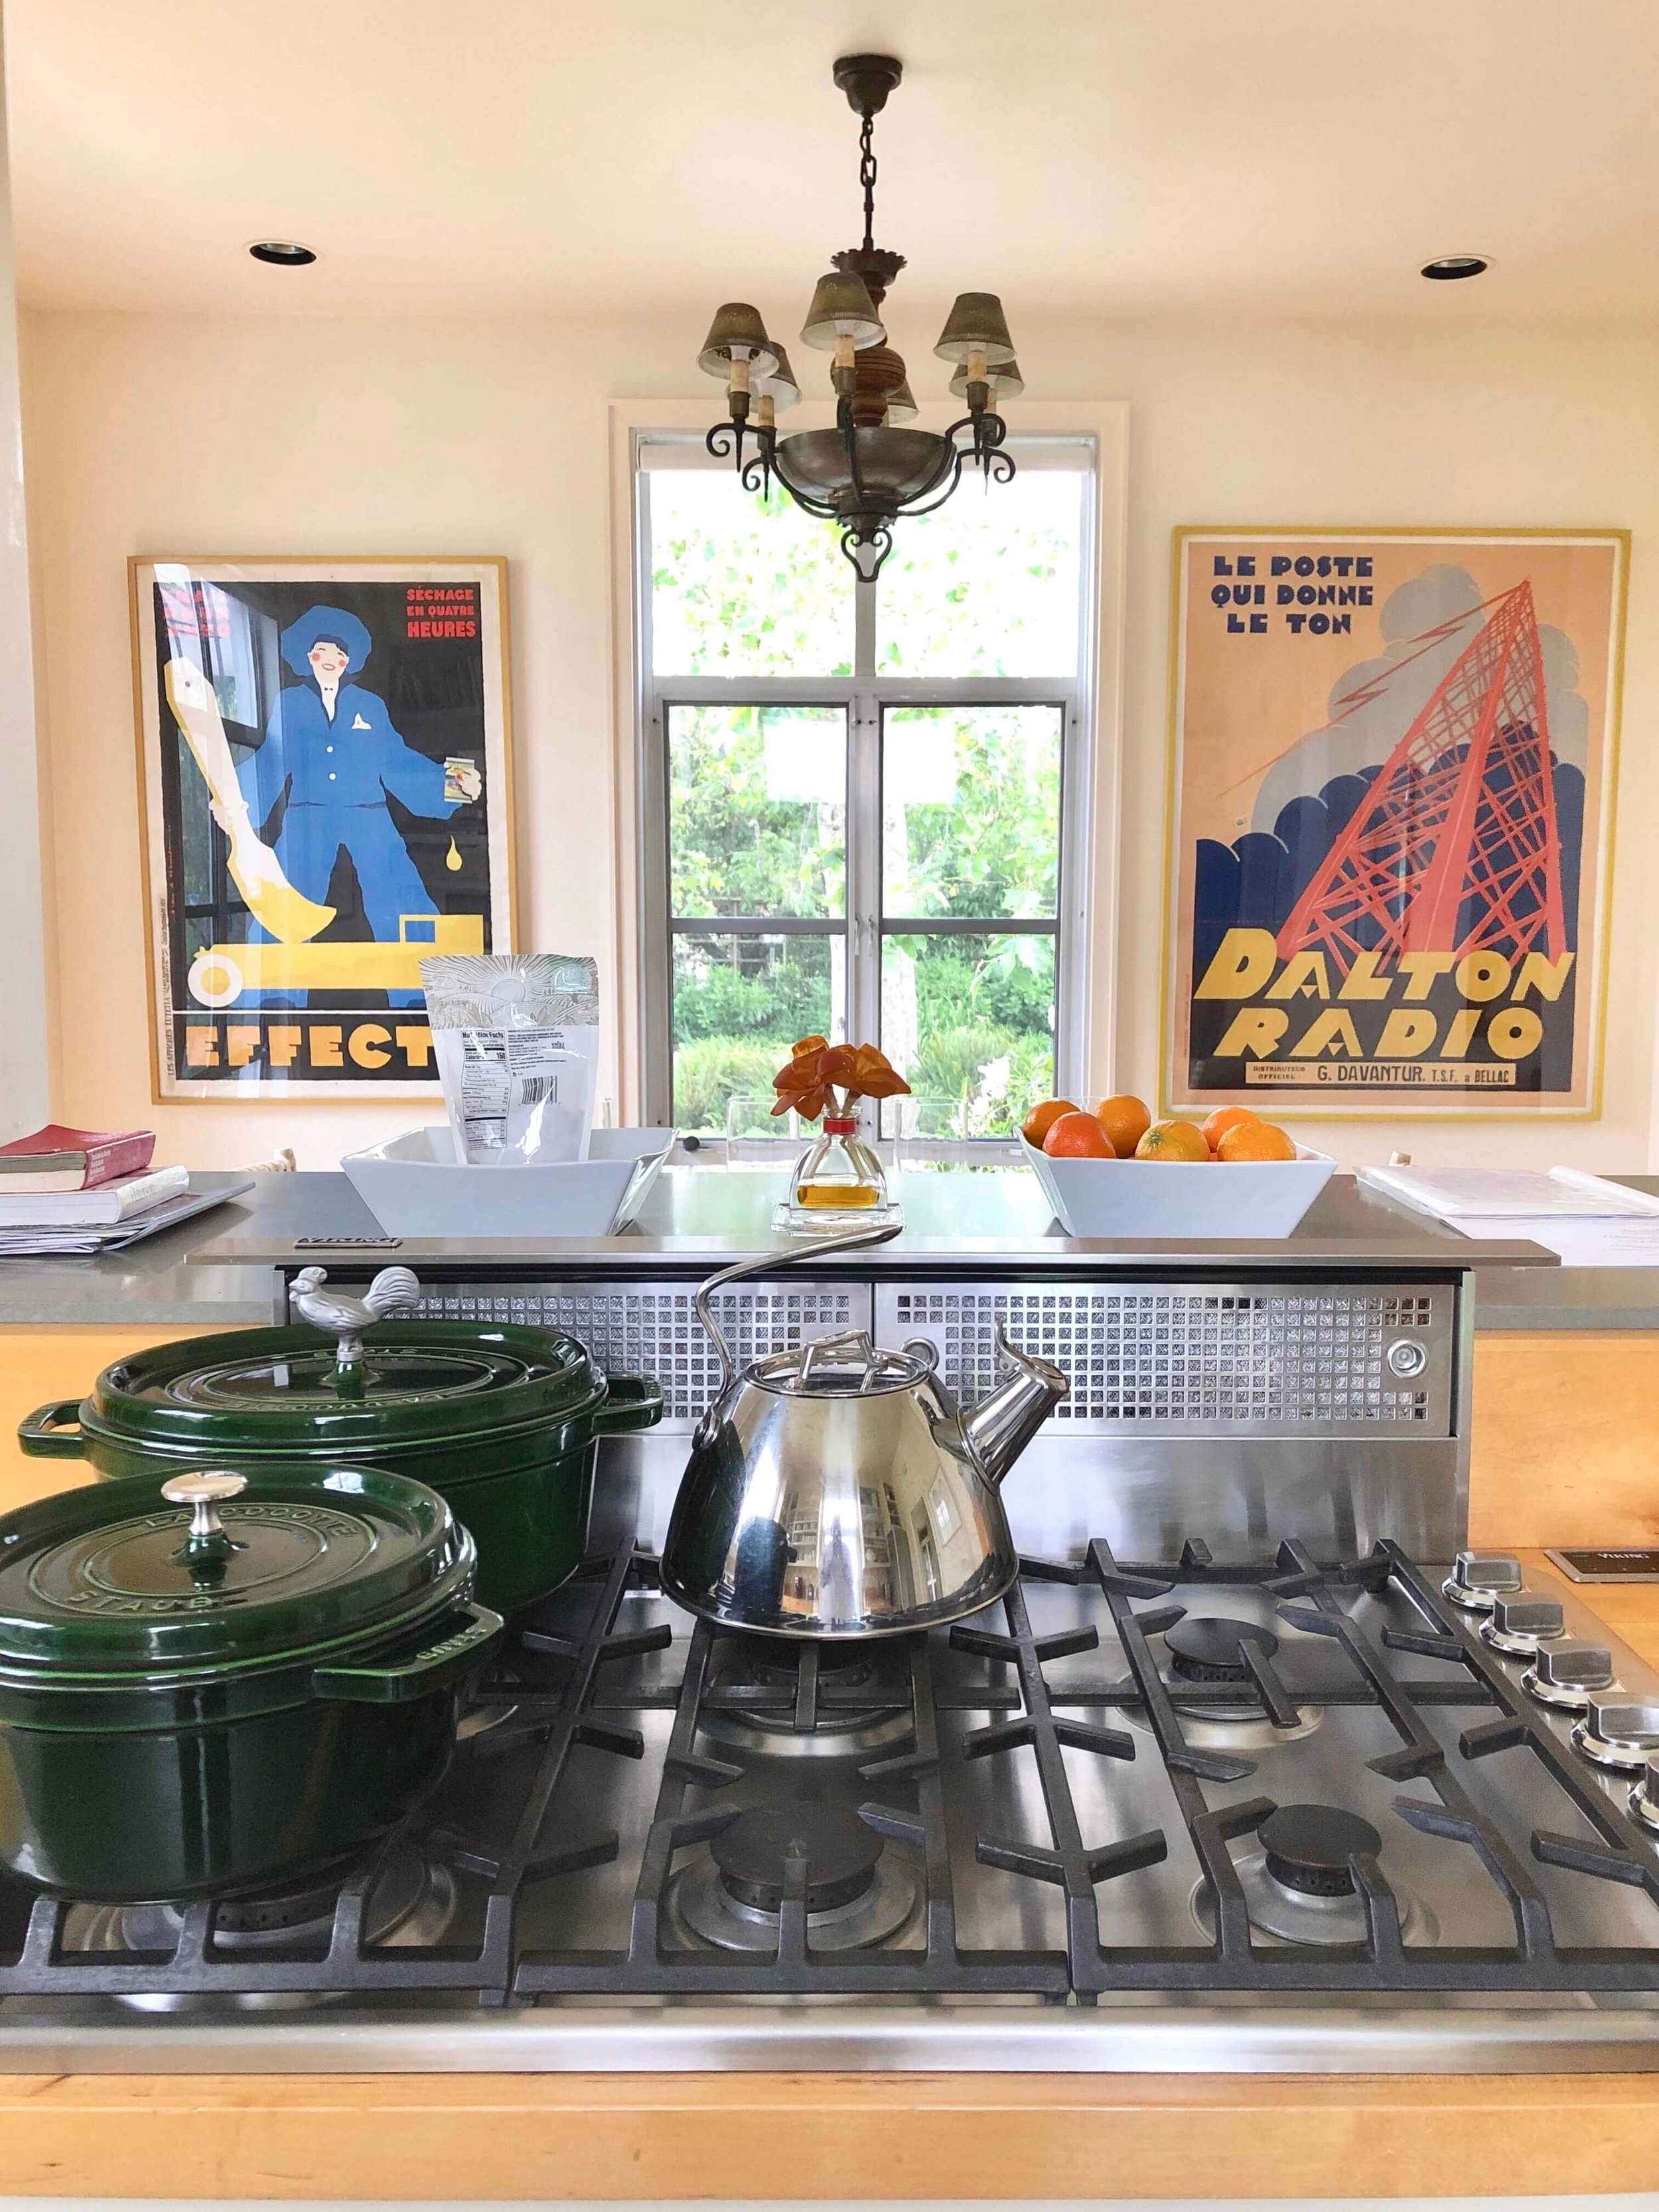 Here's the Viking cooktop with Staub hunter green cookware in the kitchen. Vintage French posters create a European ambience in this Sonoma Valley Airbnb vacation rental dining room (beyond the kitchen)..#airbnb #winecountry #farmhousekitchen